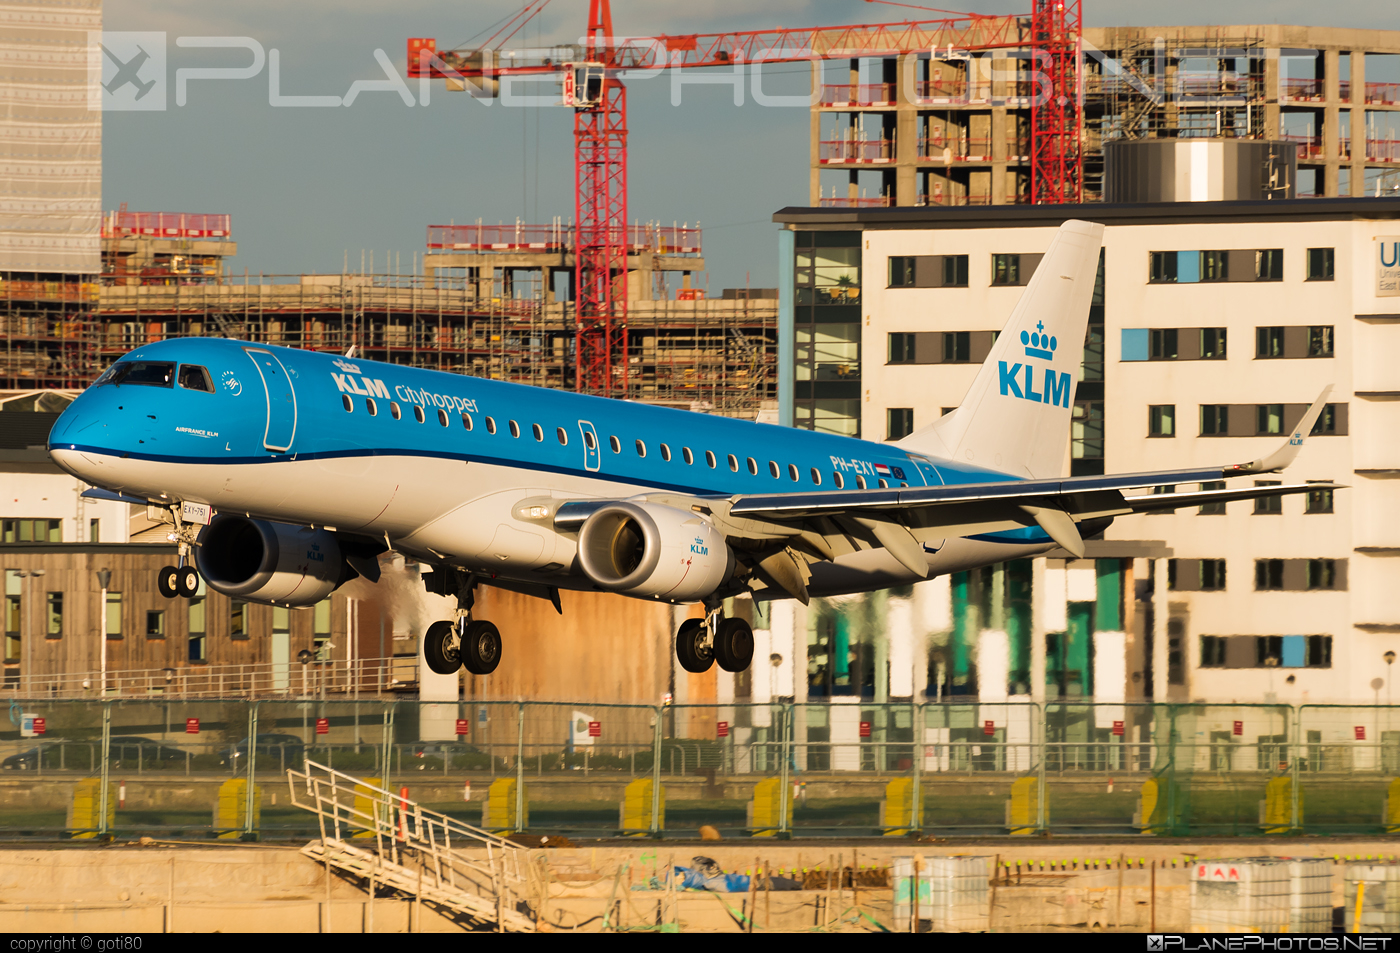 Embraer 190-100STD - PH-EXY operated by KLM Cityhopper #e190 #embraer #embraer190 #embraer190std #klm #klmcityhopper